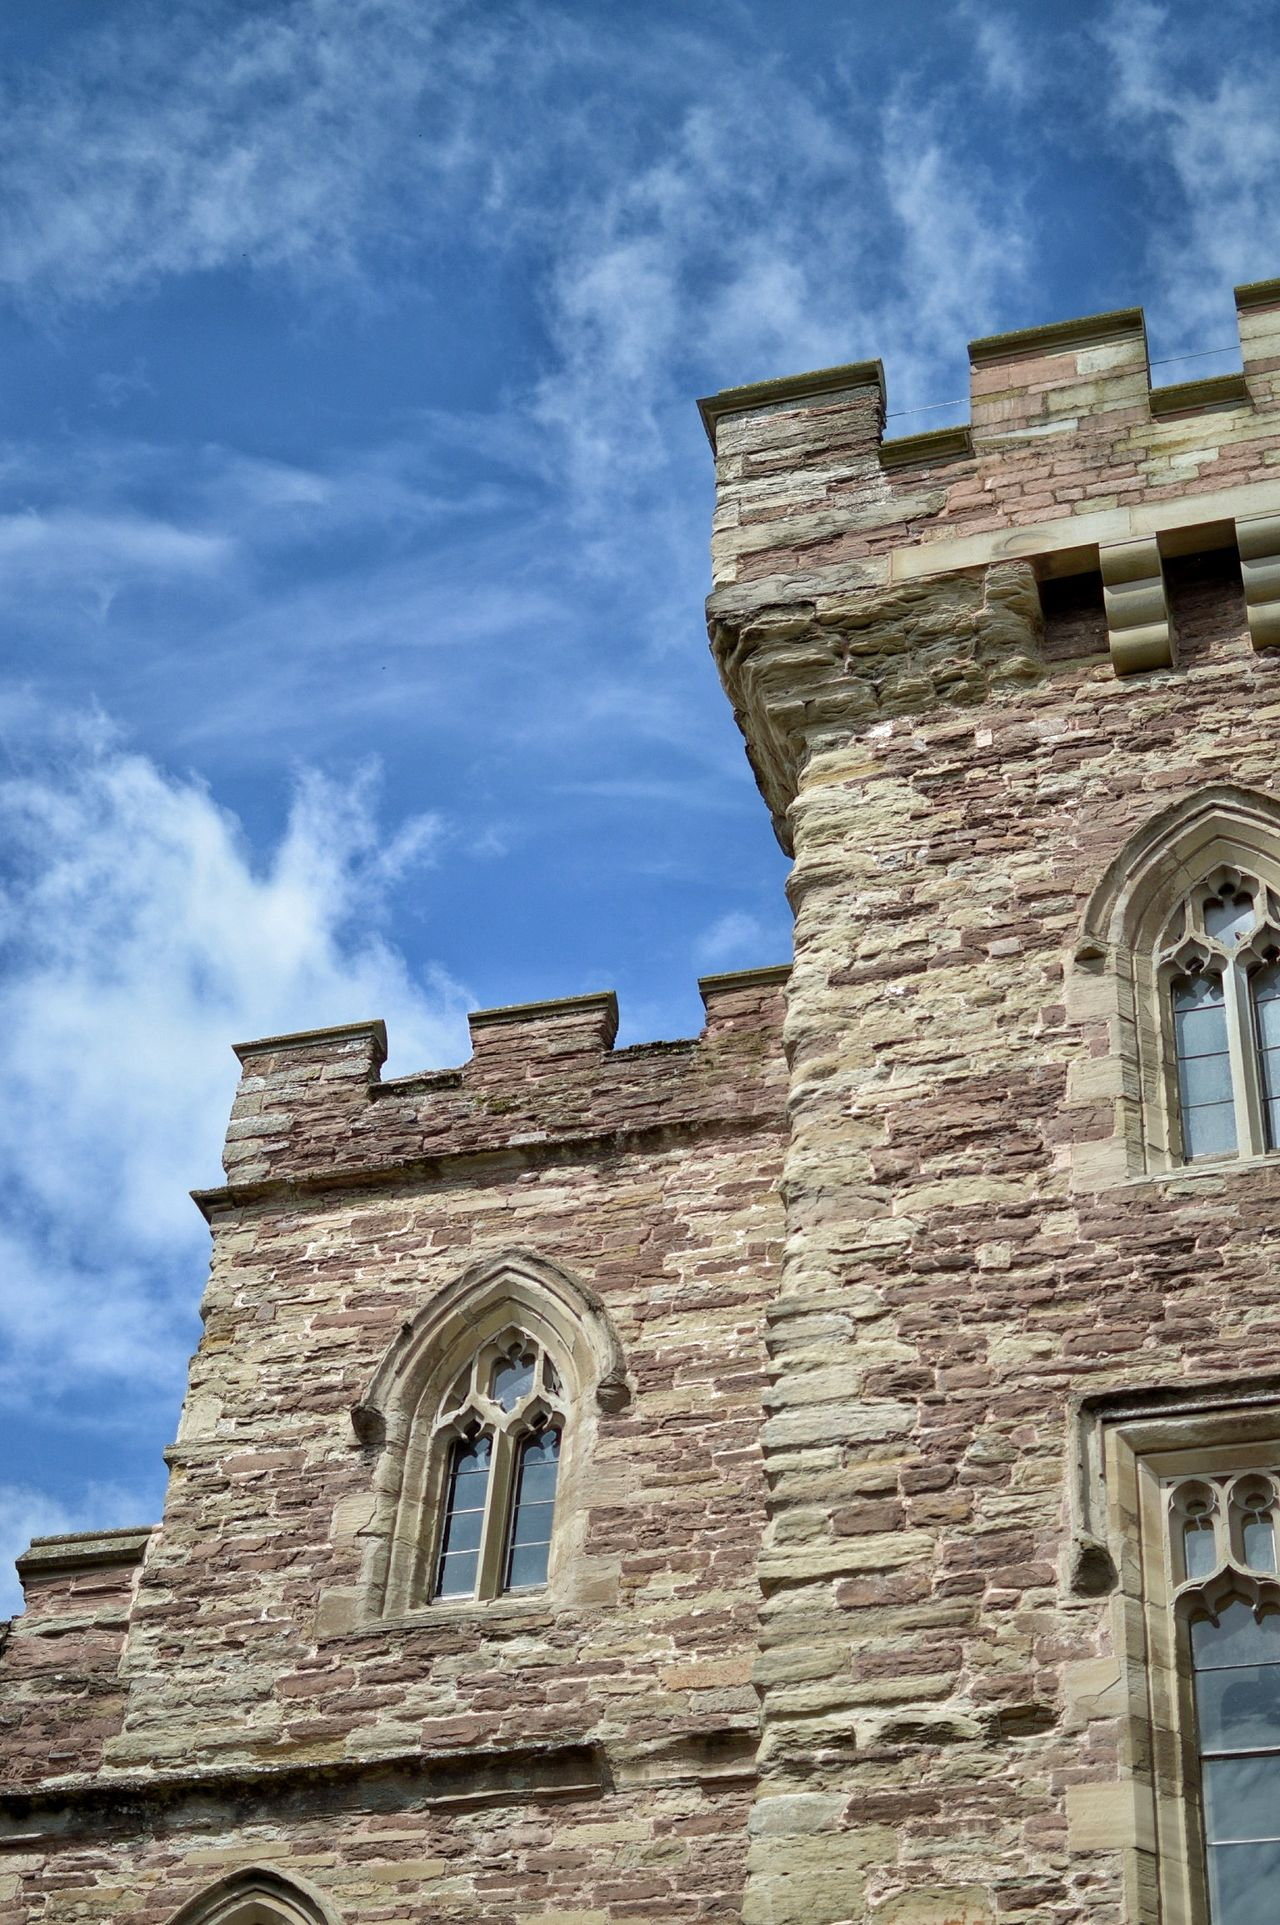 Castle Architecture EyeEm Best Shots - Architecture Clouds And Sky Landscapes With WhiteWall